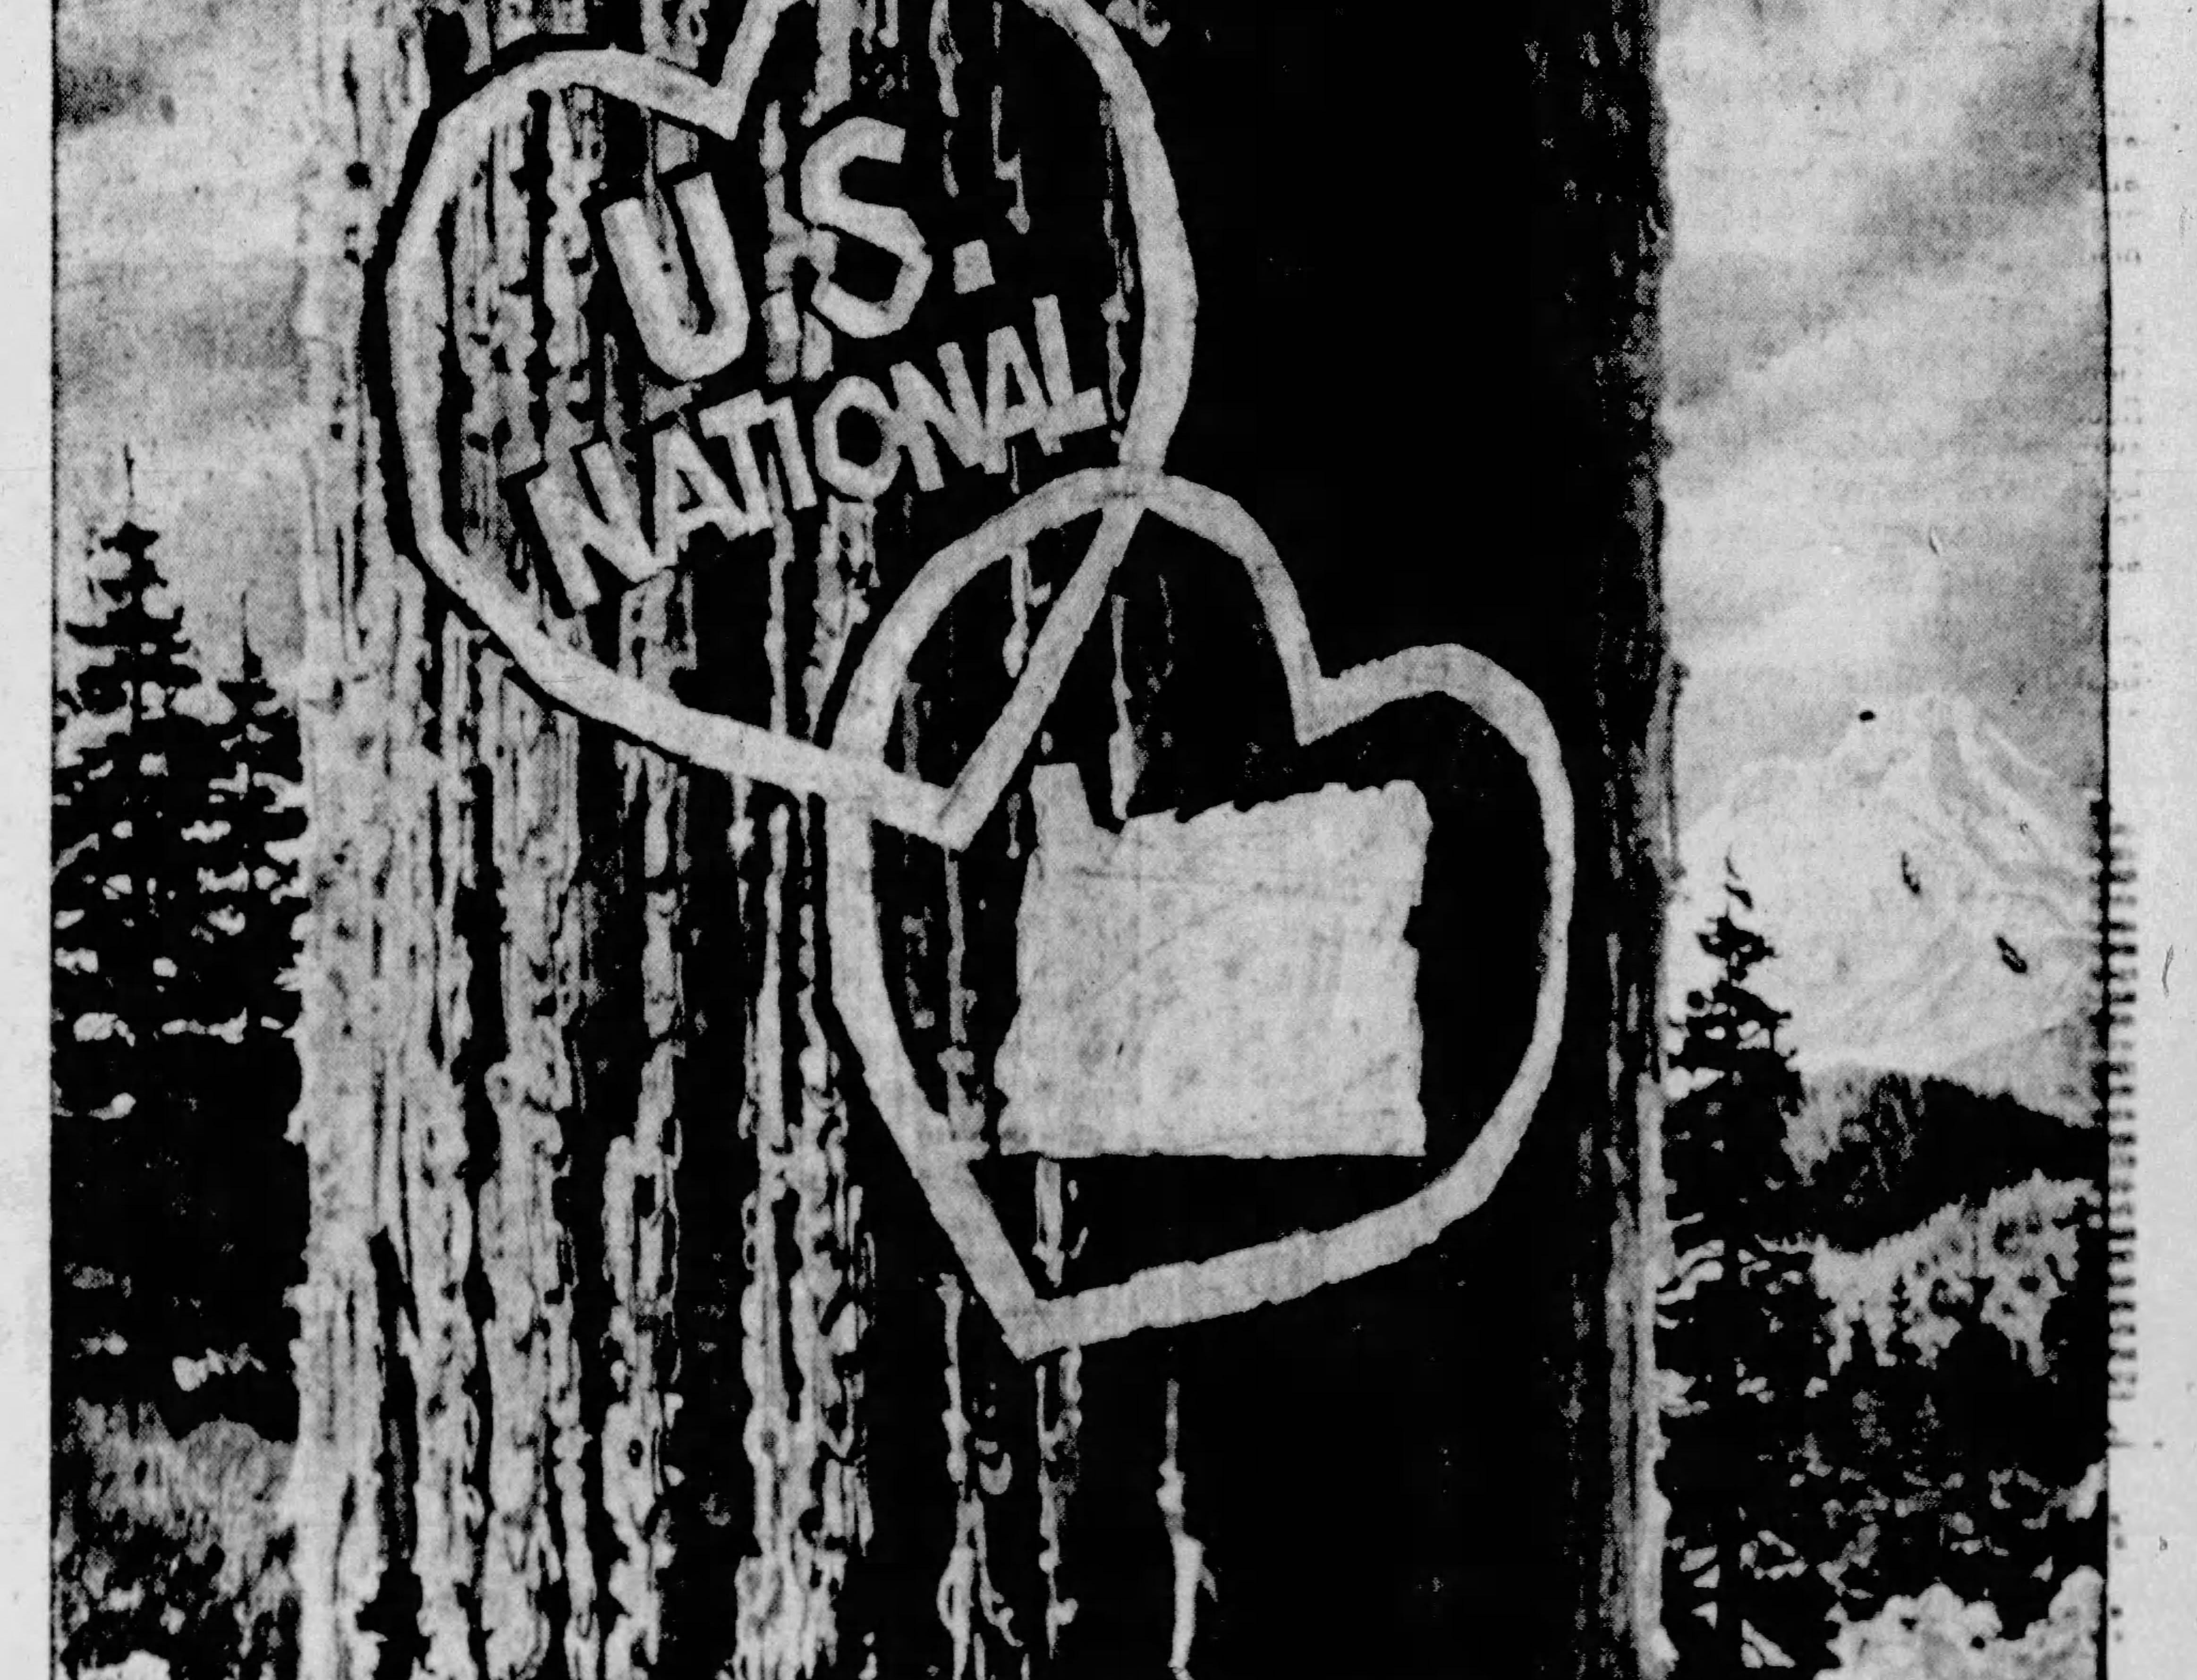 An advertisement in the Feb. 14, 1959 Capital Journal wishes Oregon a Happy Birthday as she turns 100!